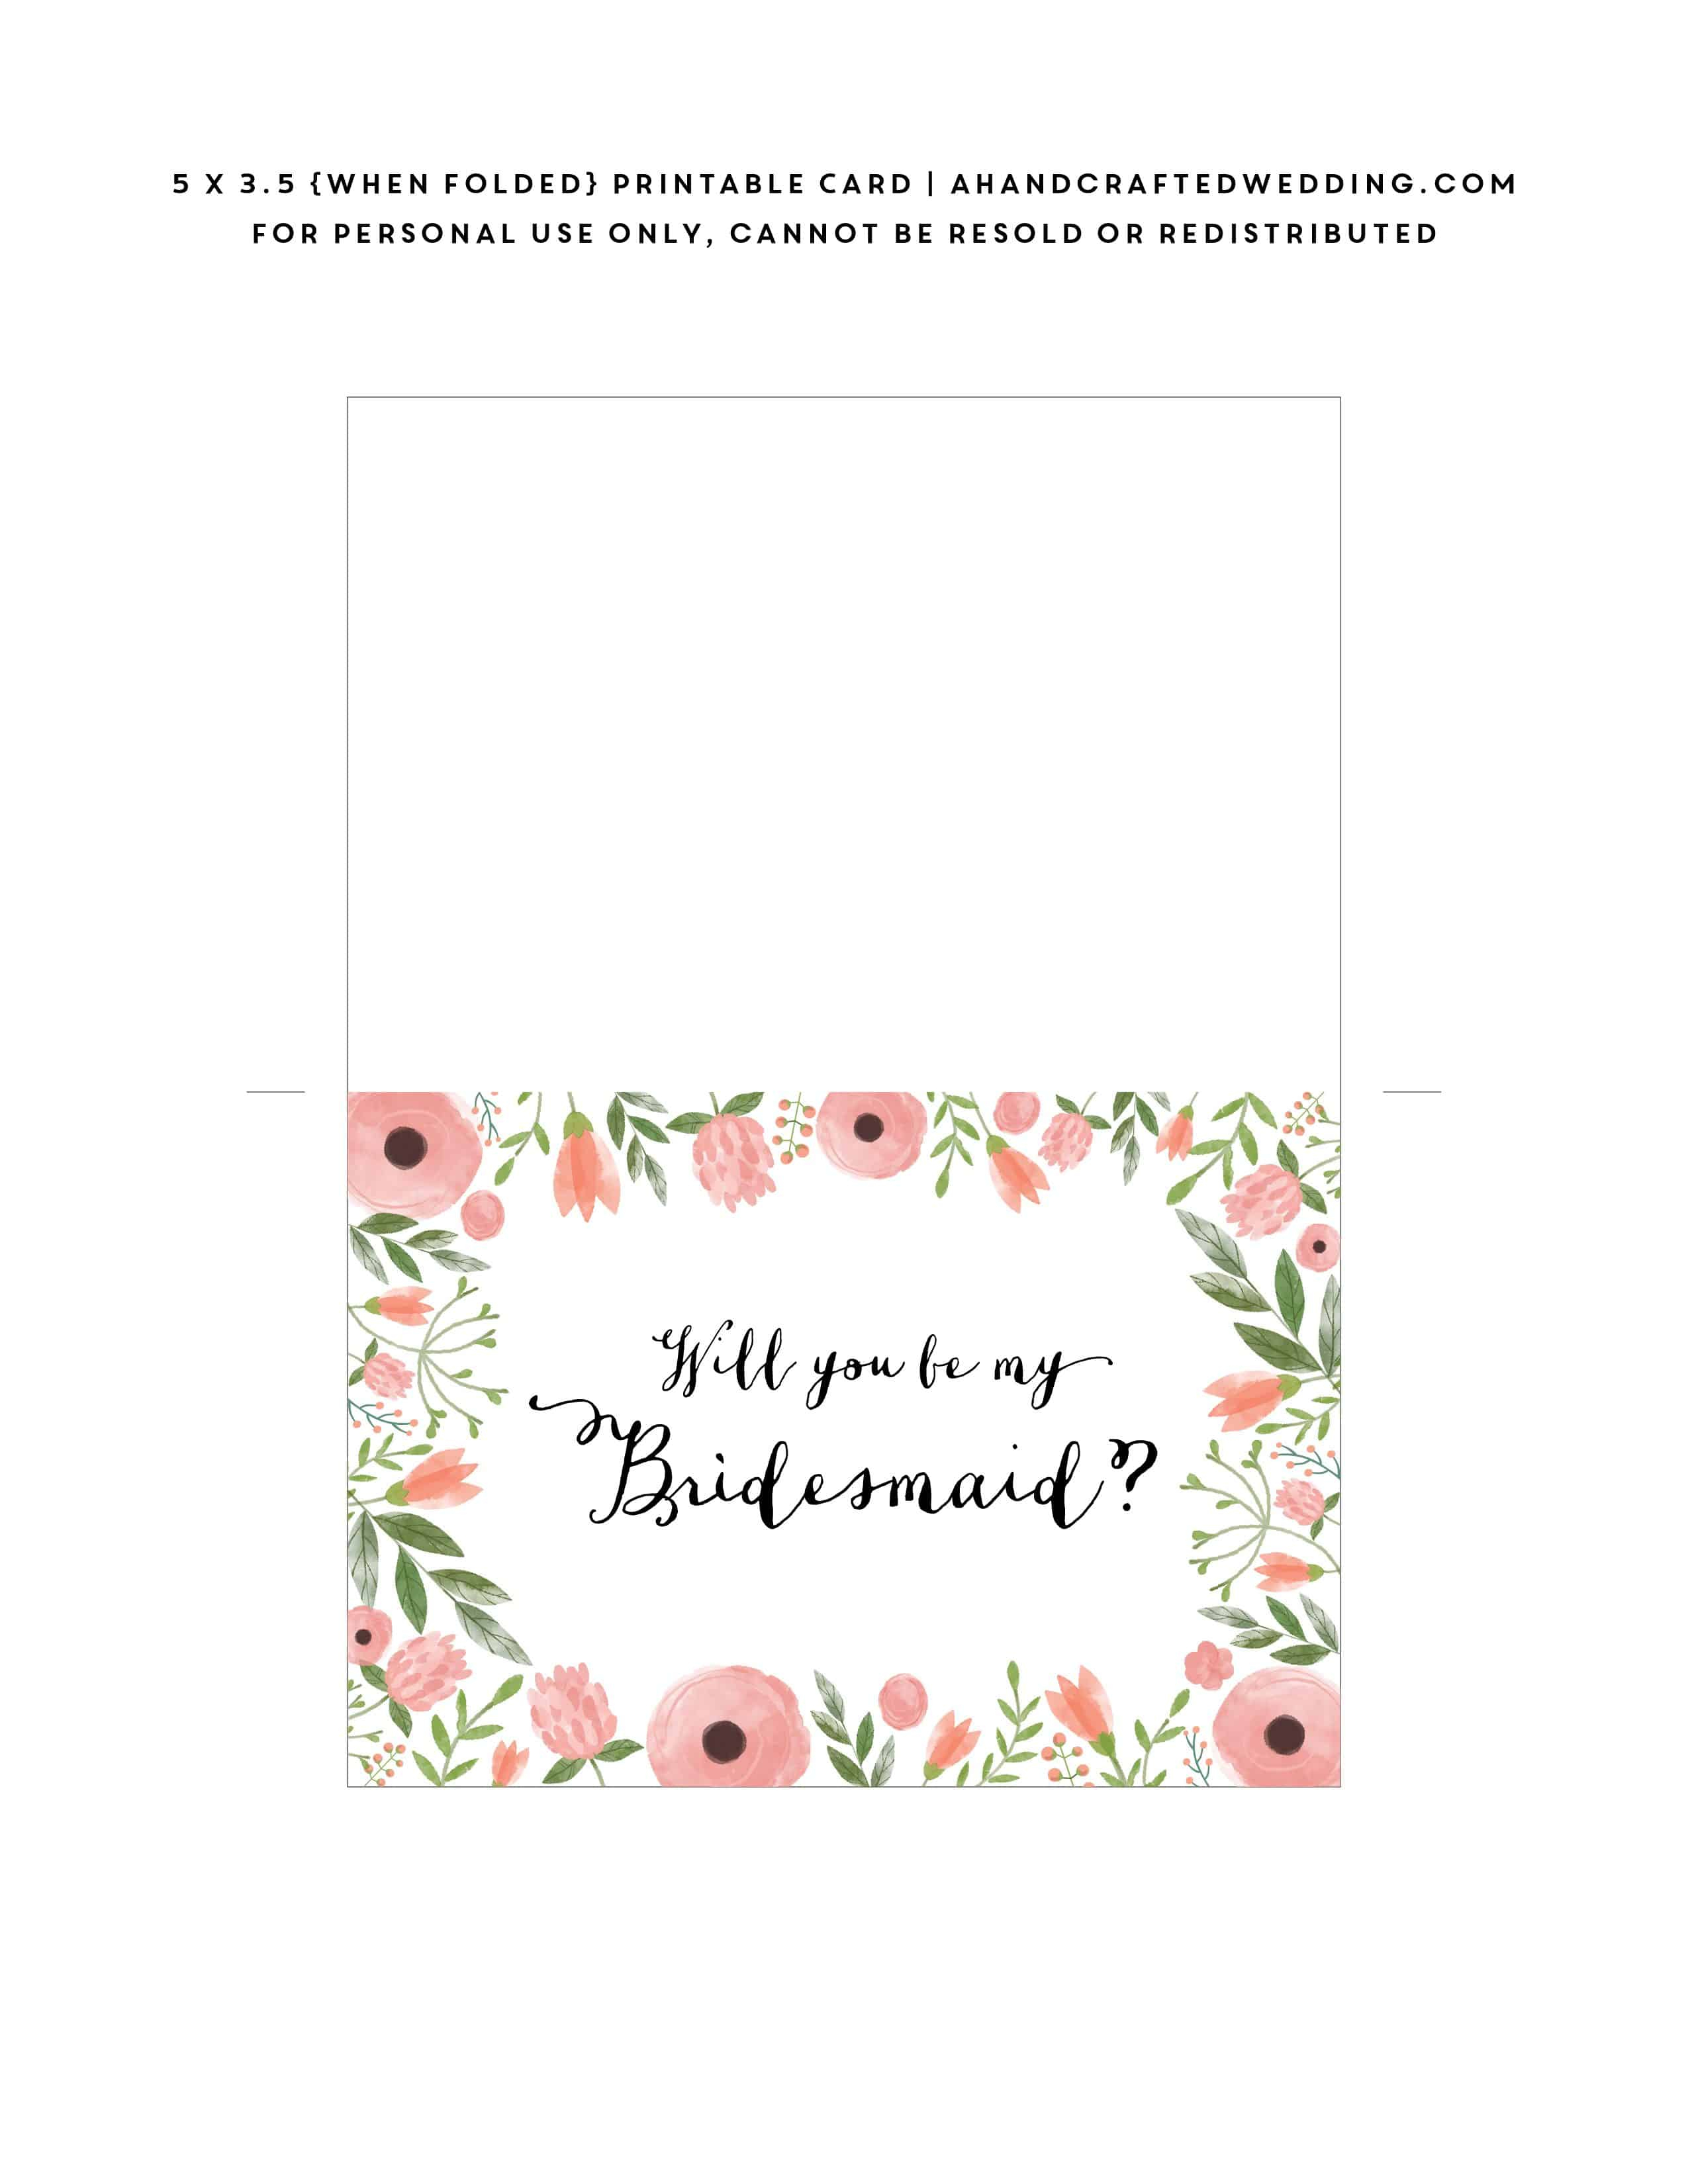 Free Printable Will You Be My Bridesmaid Card | Mountain Modern Life - Free Printable Cards